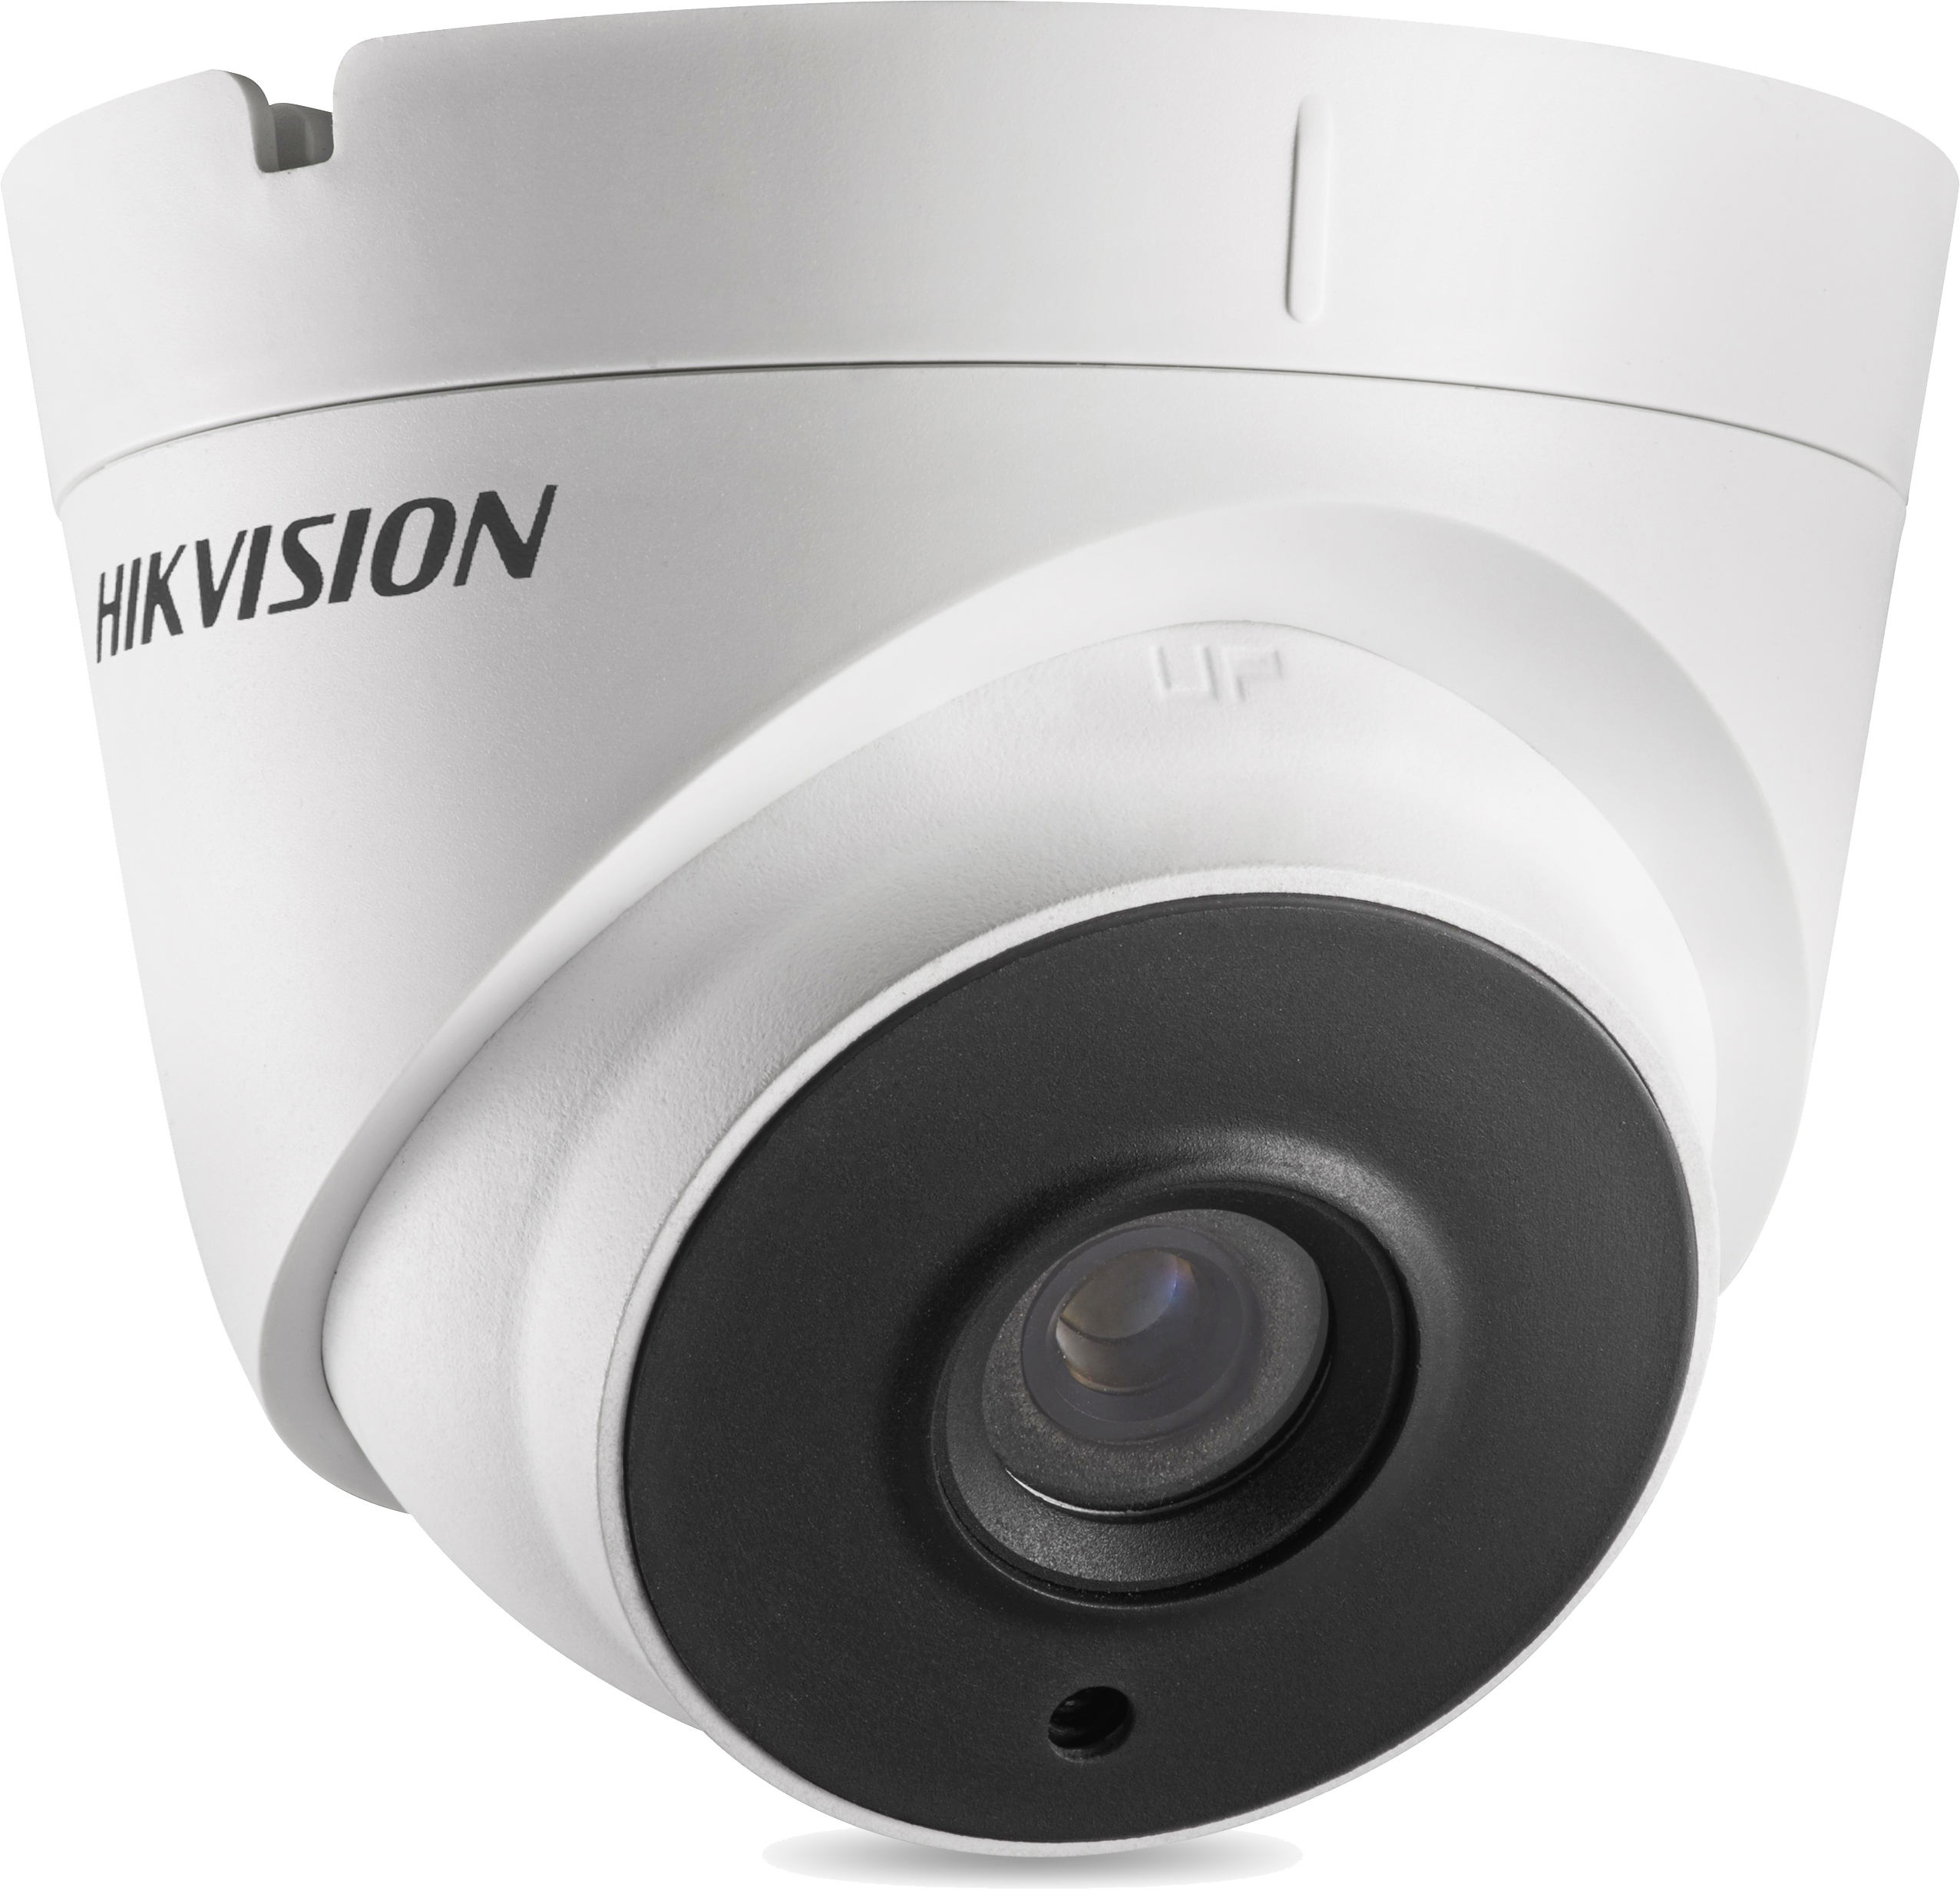 Hikvision DS-2CE56C0T-IT1 3.6mm